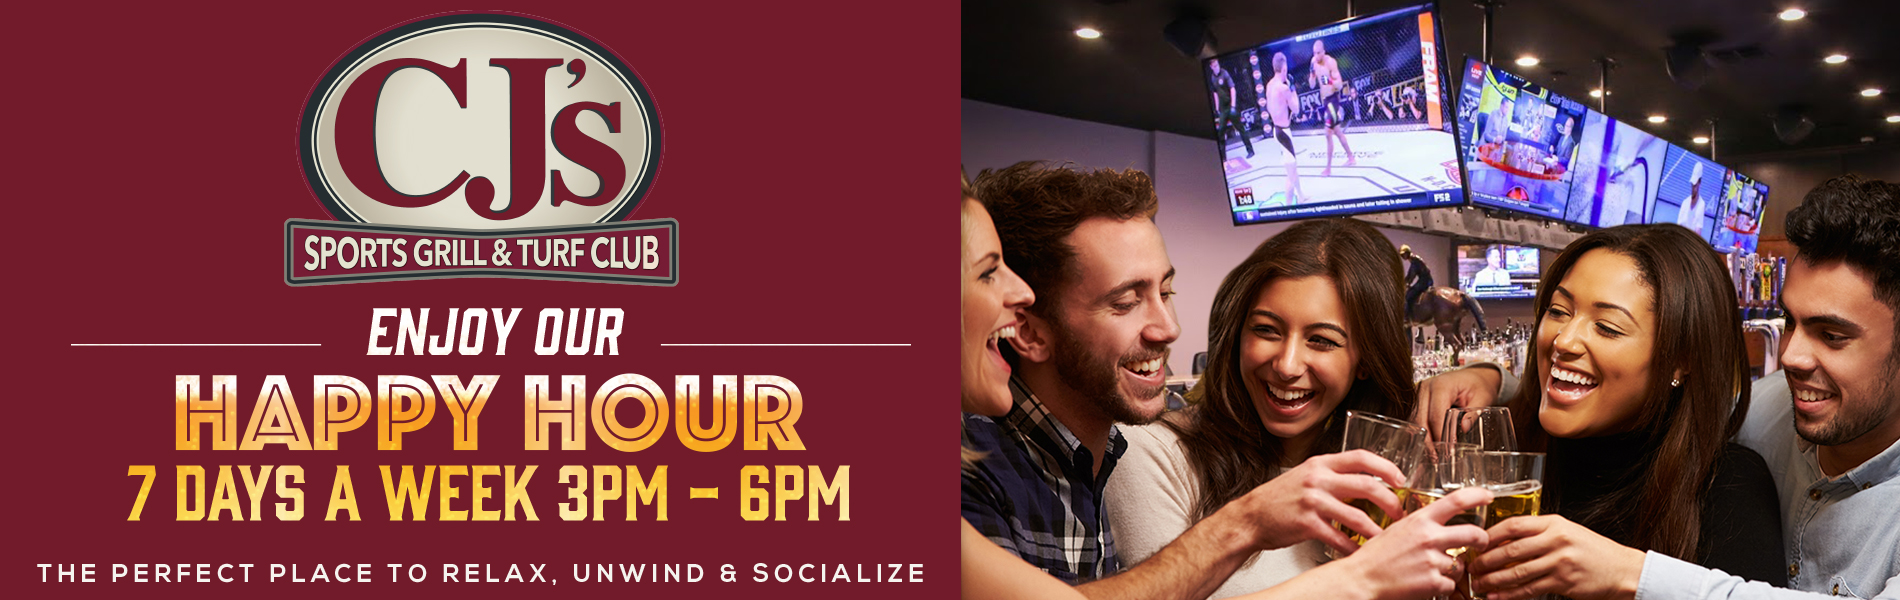 CJ's Sports Grill & Turf Club Happy Hour